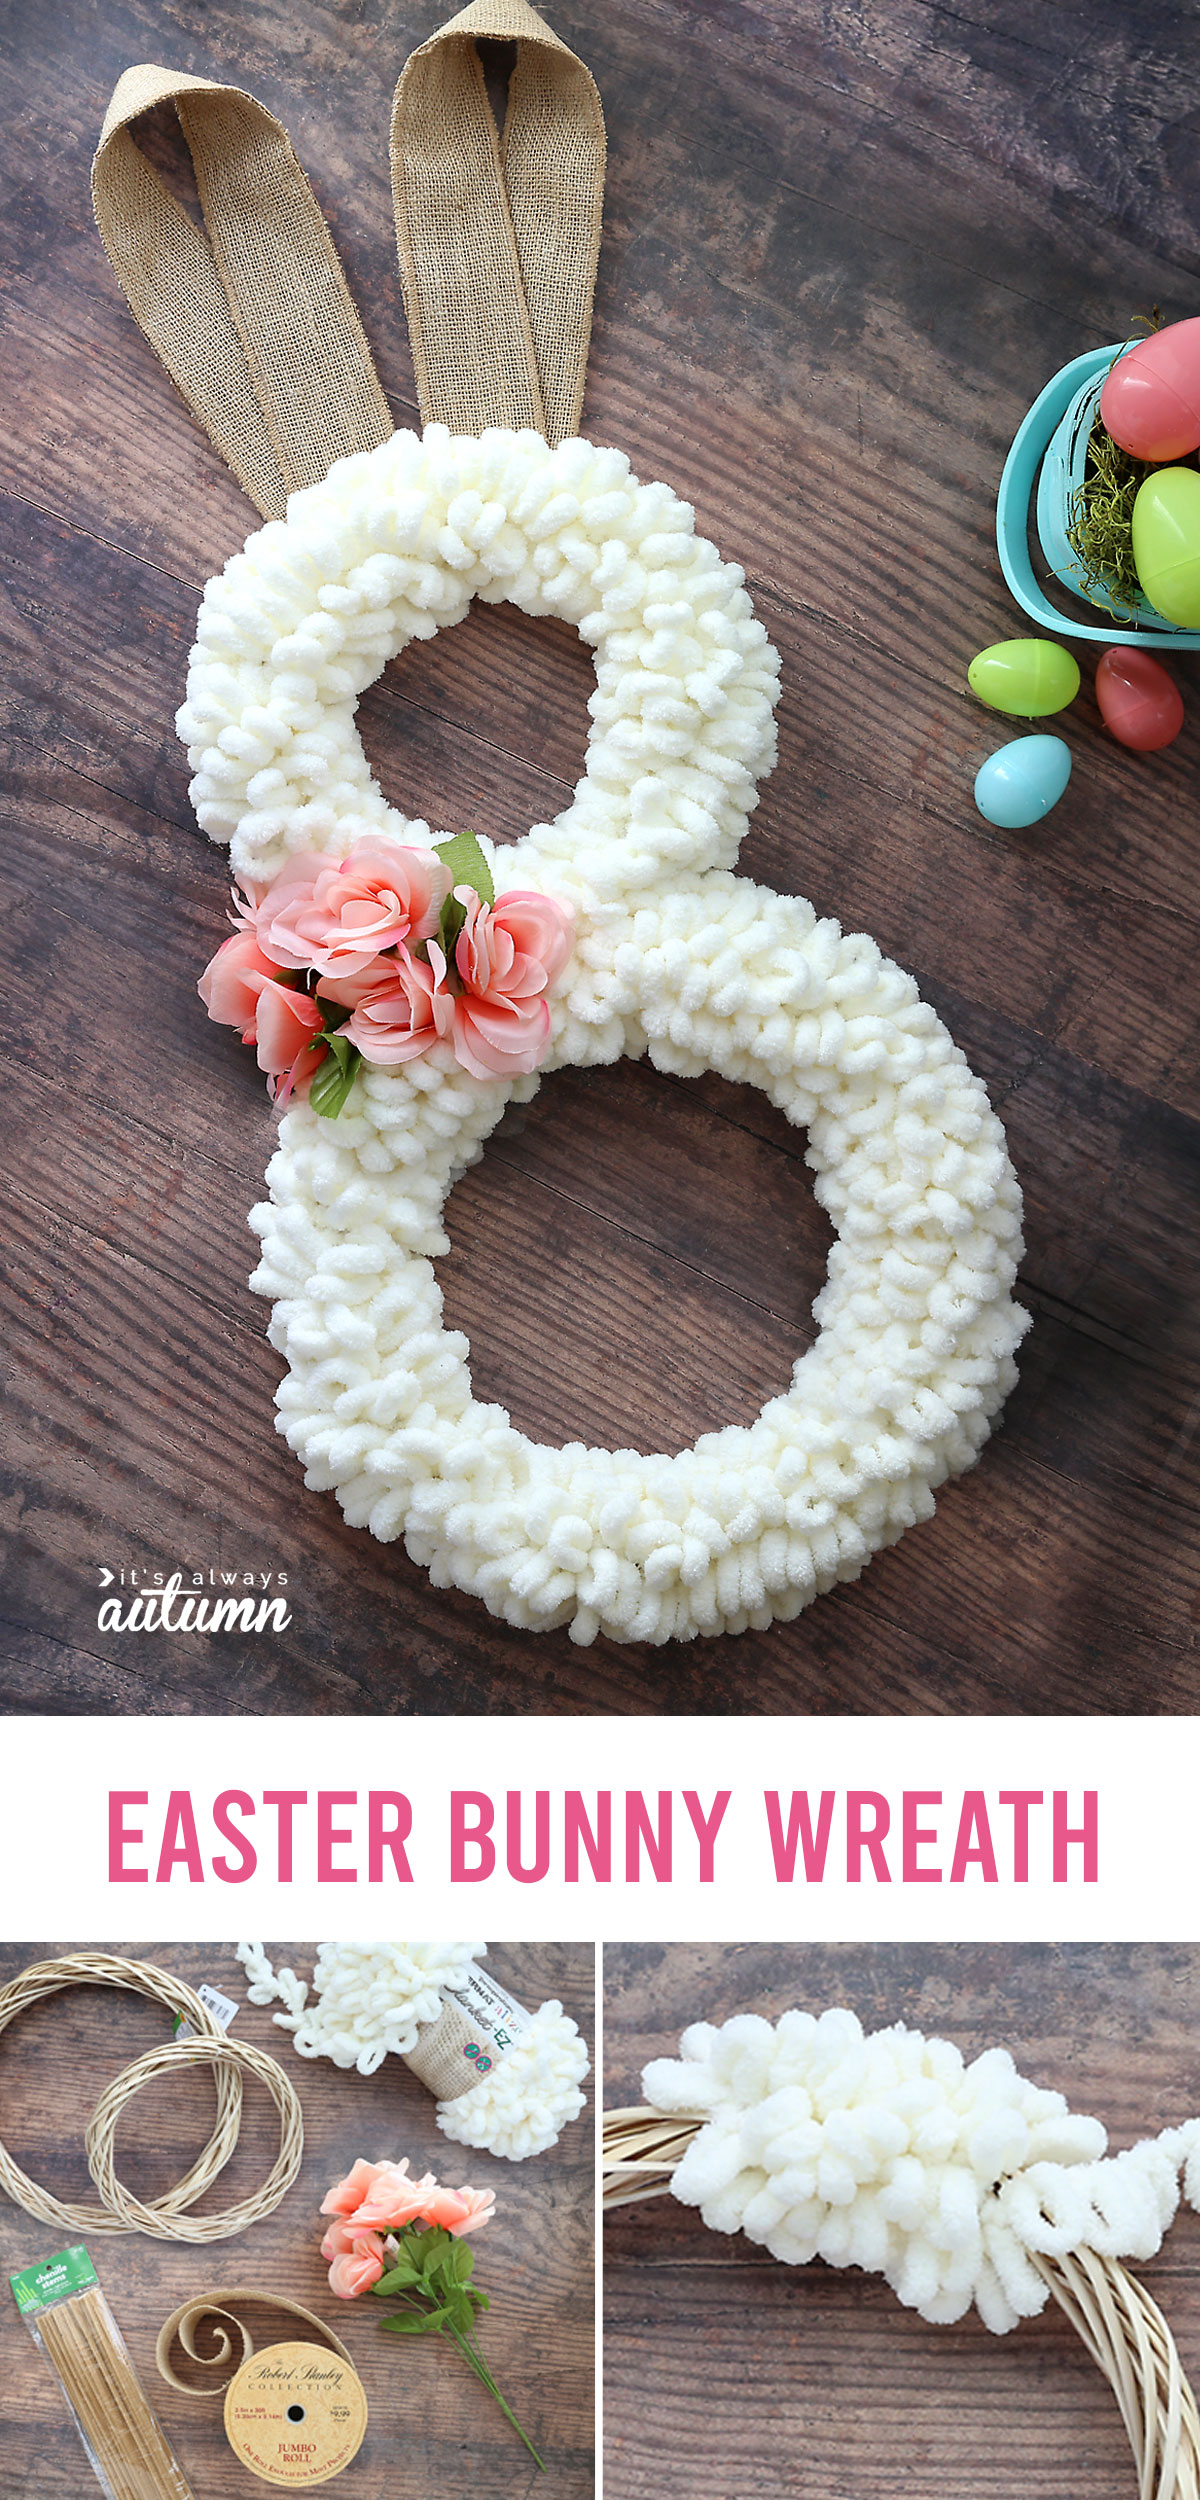 Easter bunny wreath made from cream loop yarn with burlap ribbon ears; supplies